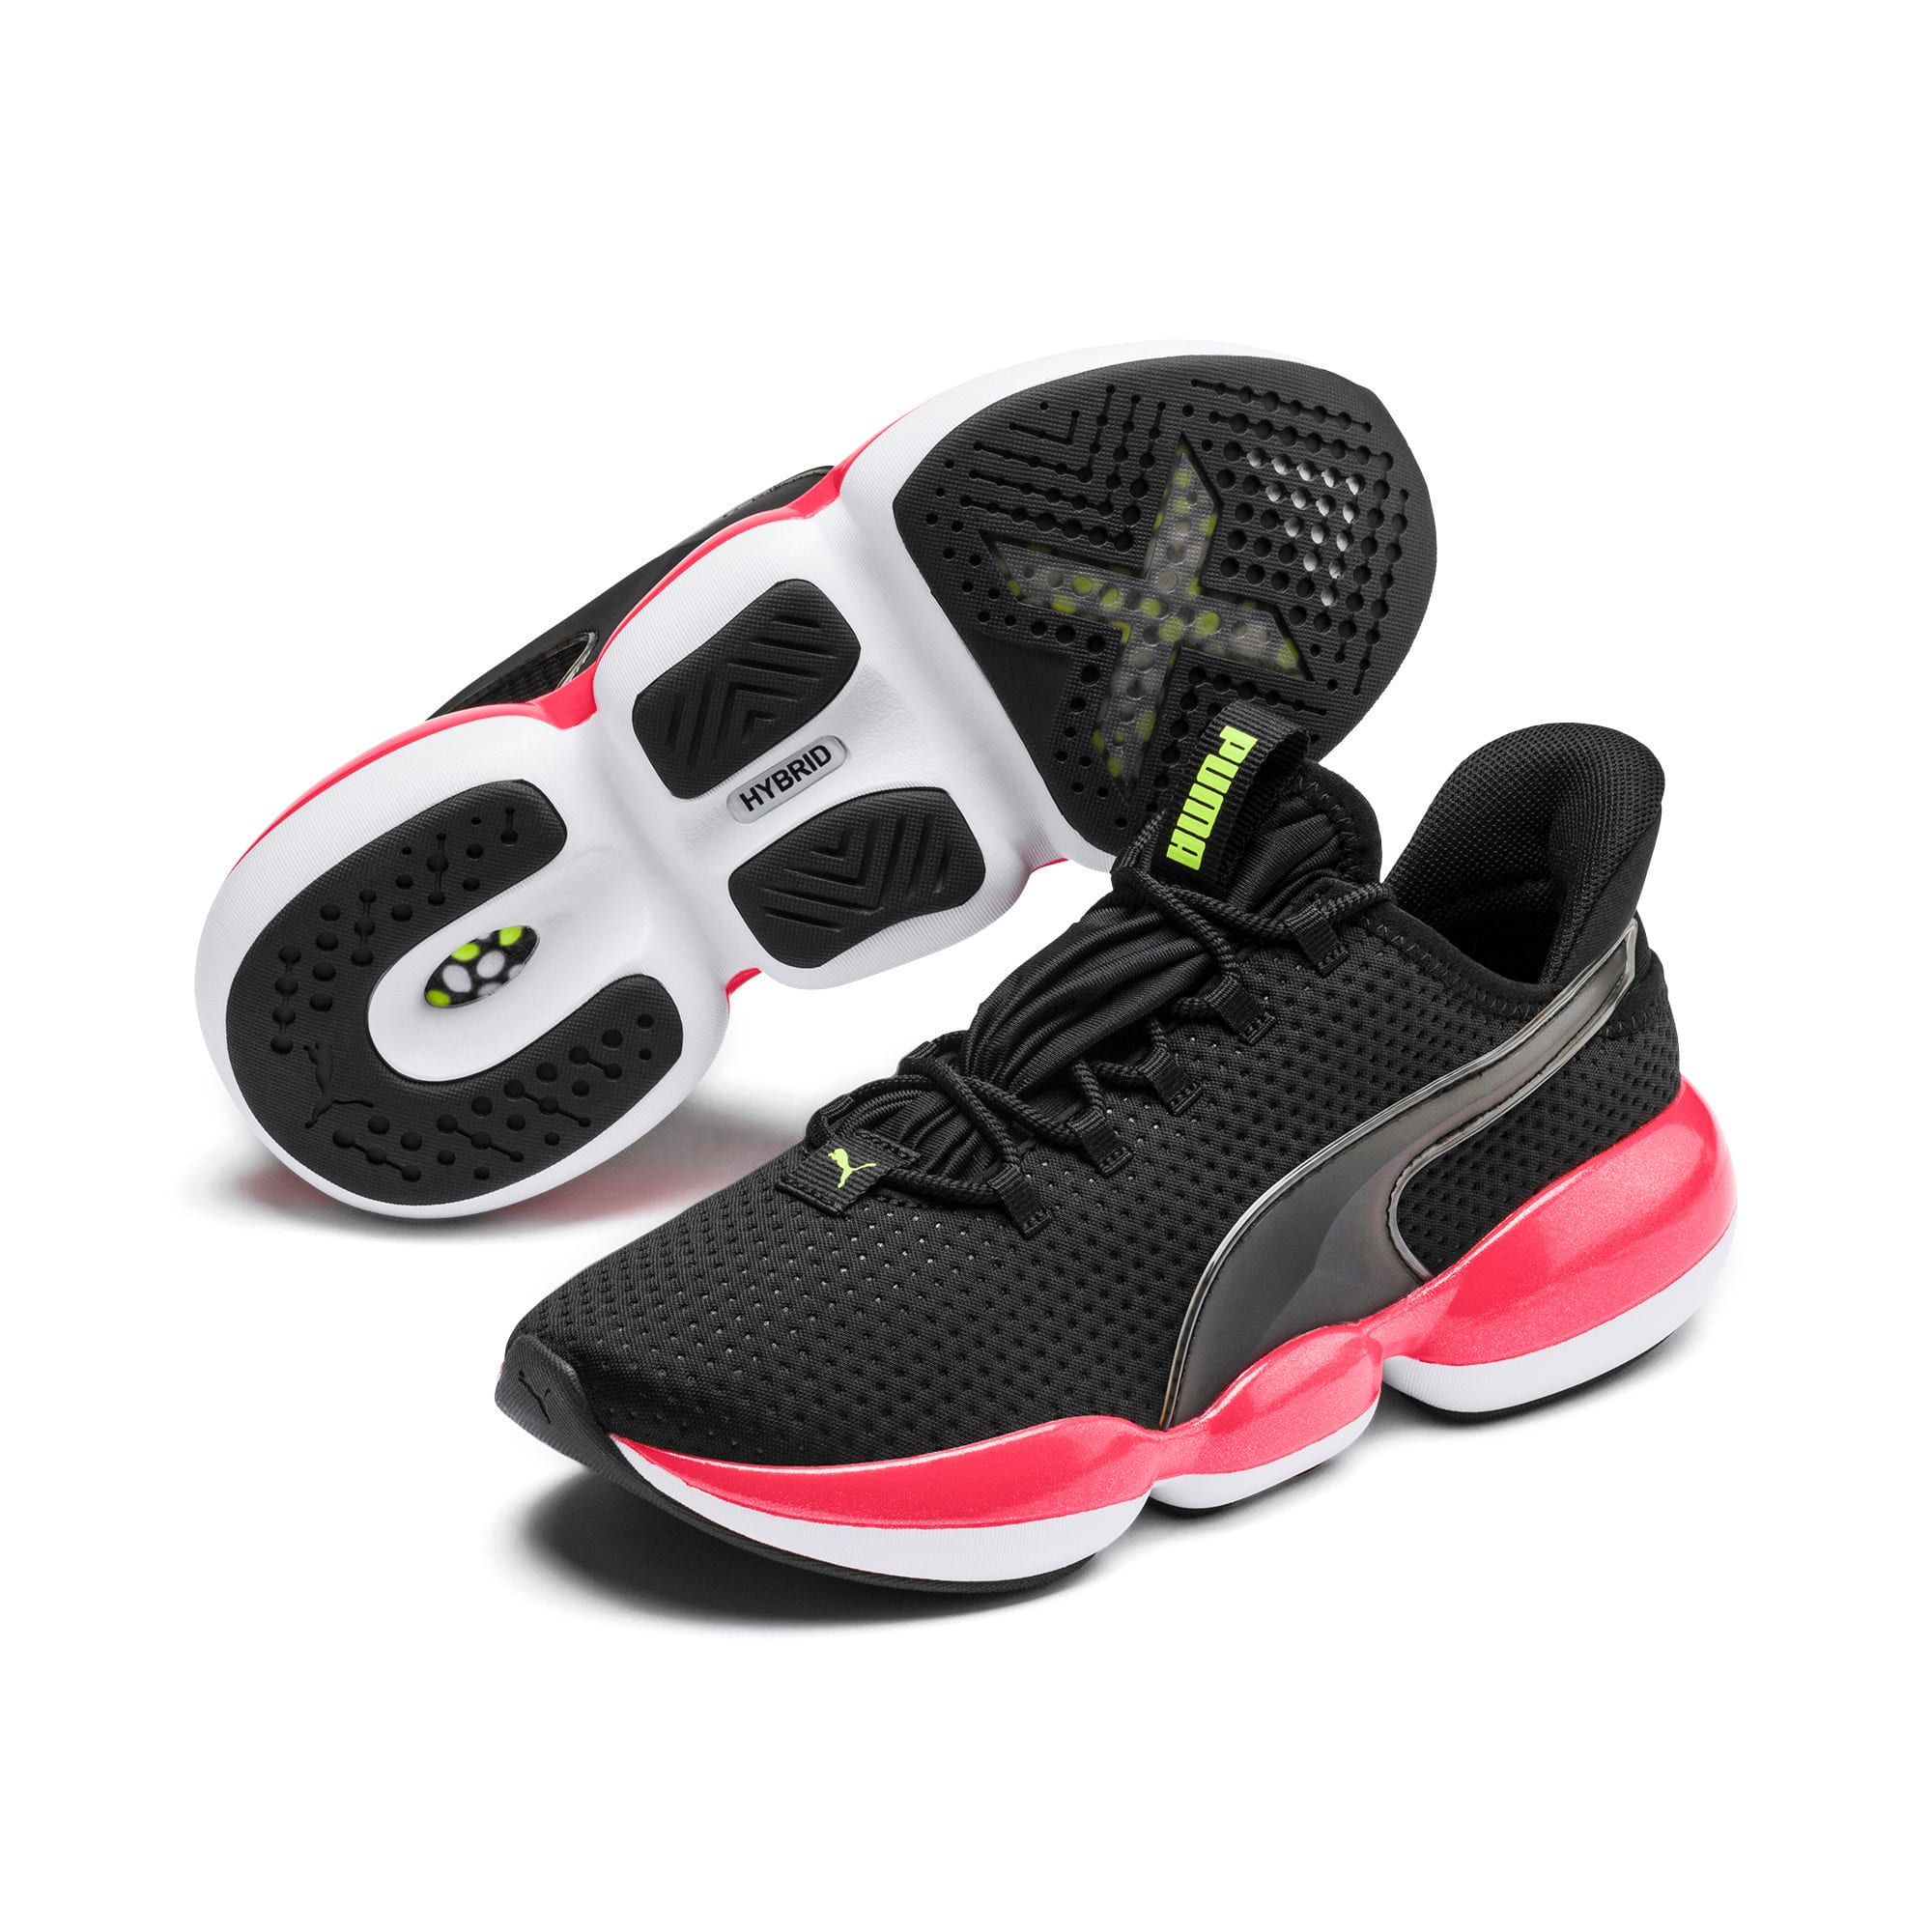 Thumbnail 3 of Mode XT Damen Trainingsschuhe, Puma Black-Pink Alert, medium